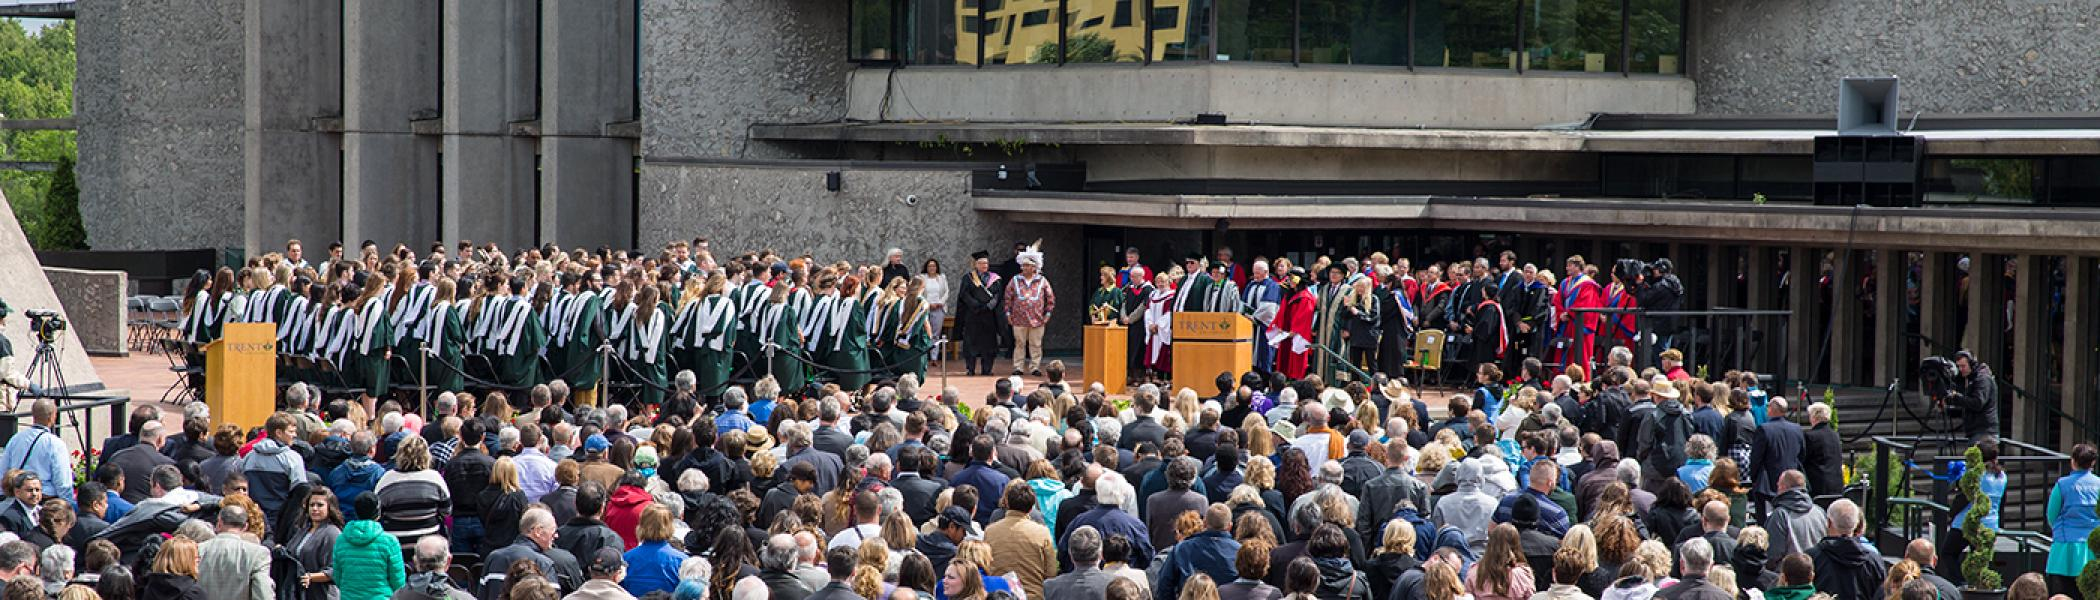 Exterior view of a convocation ceremony on the podium of the Bata library in summer sun